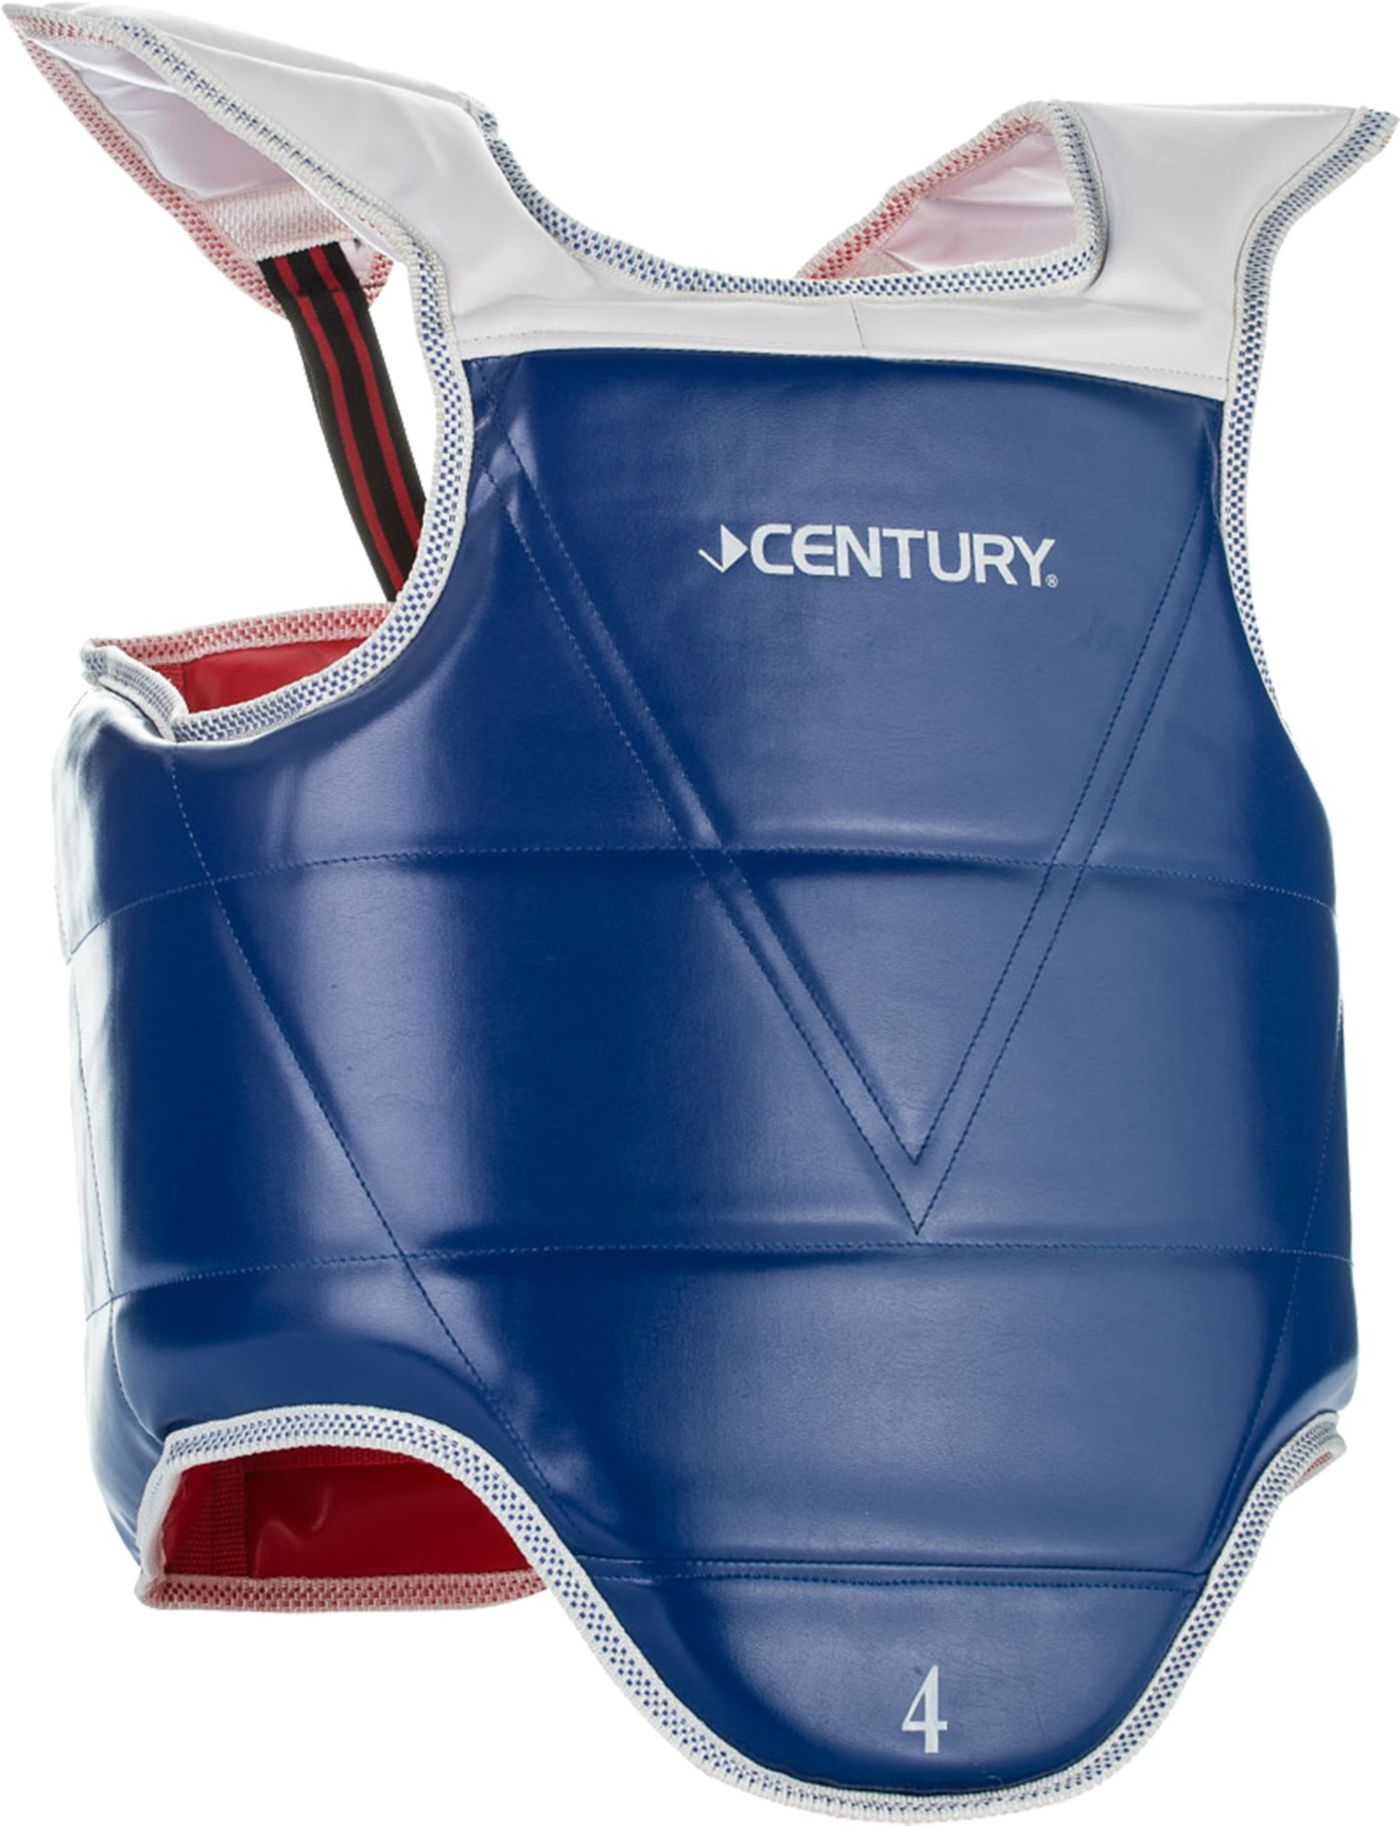 Century Reversible Chest Protector